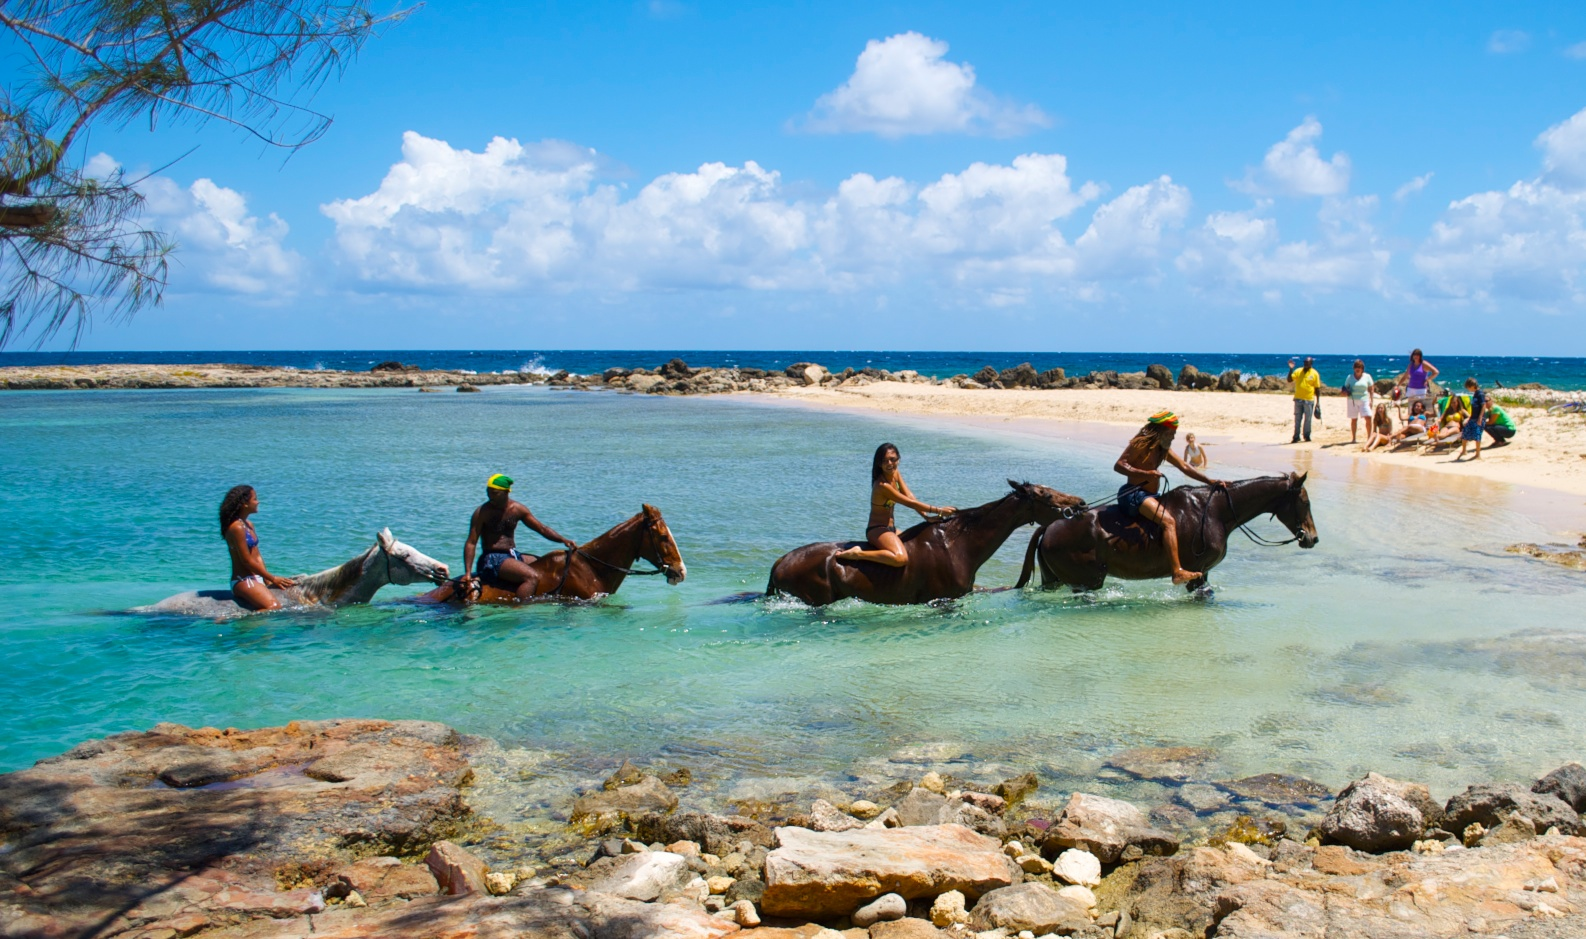 braco stables horesback riding in the sea